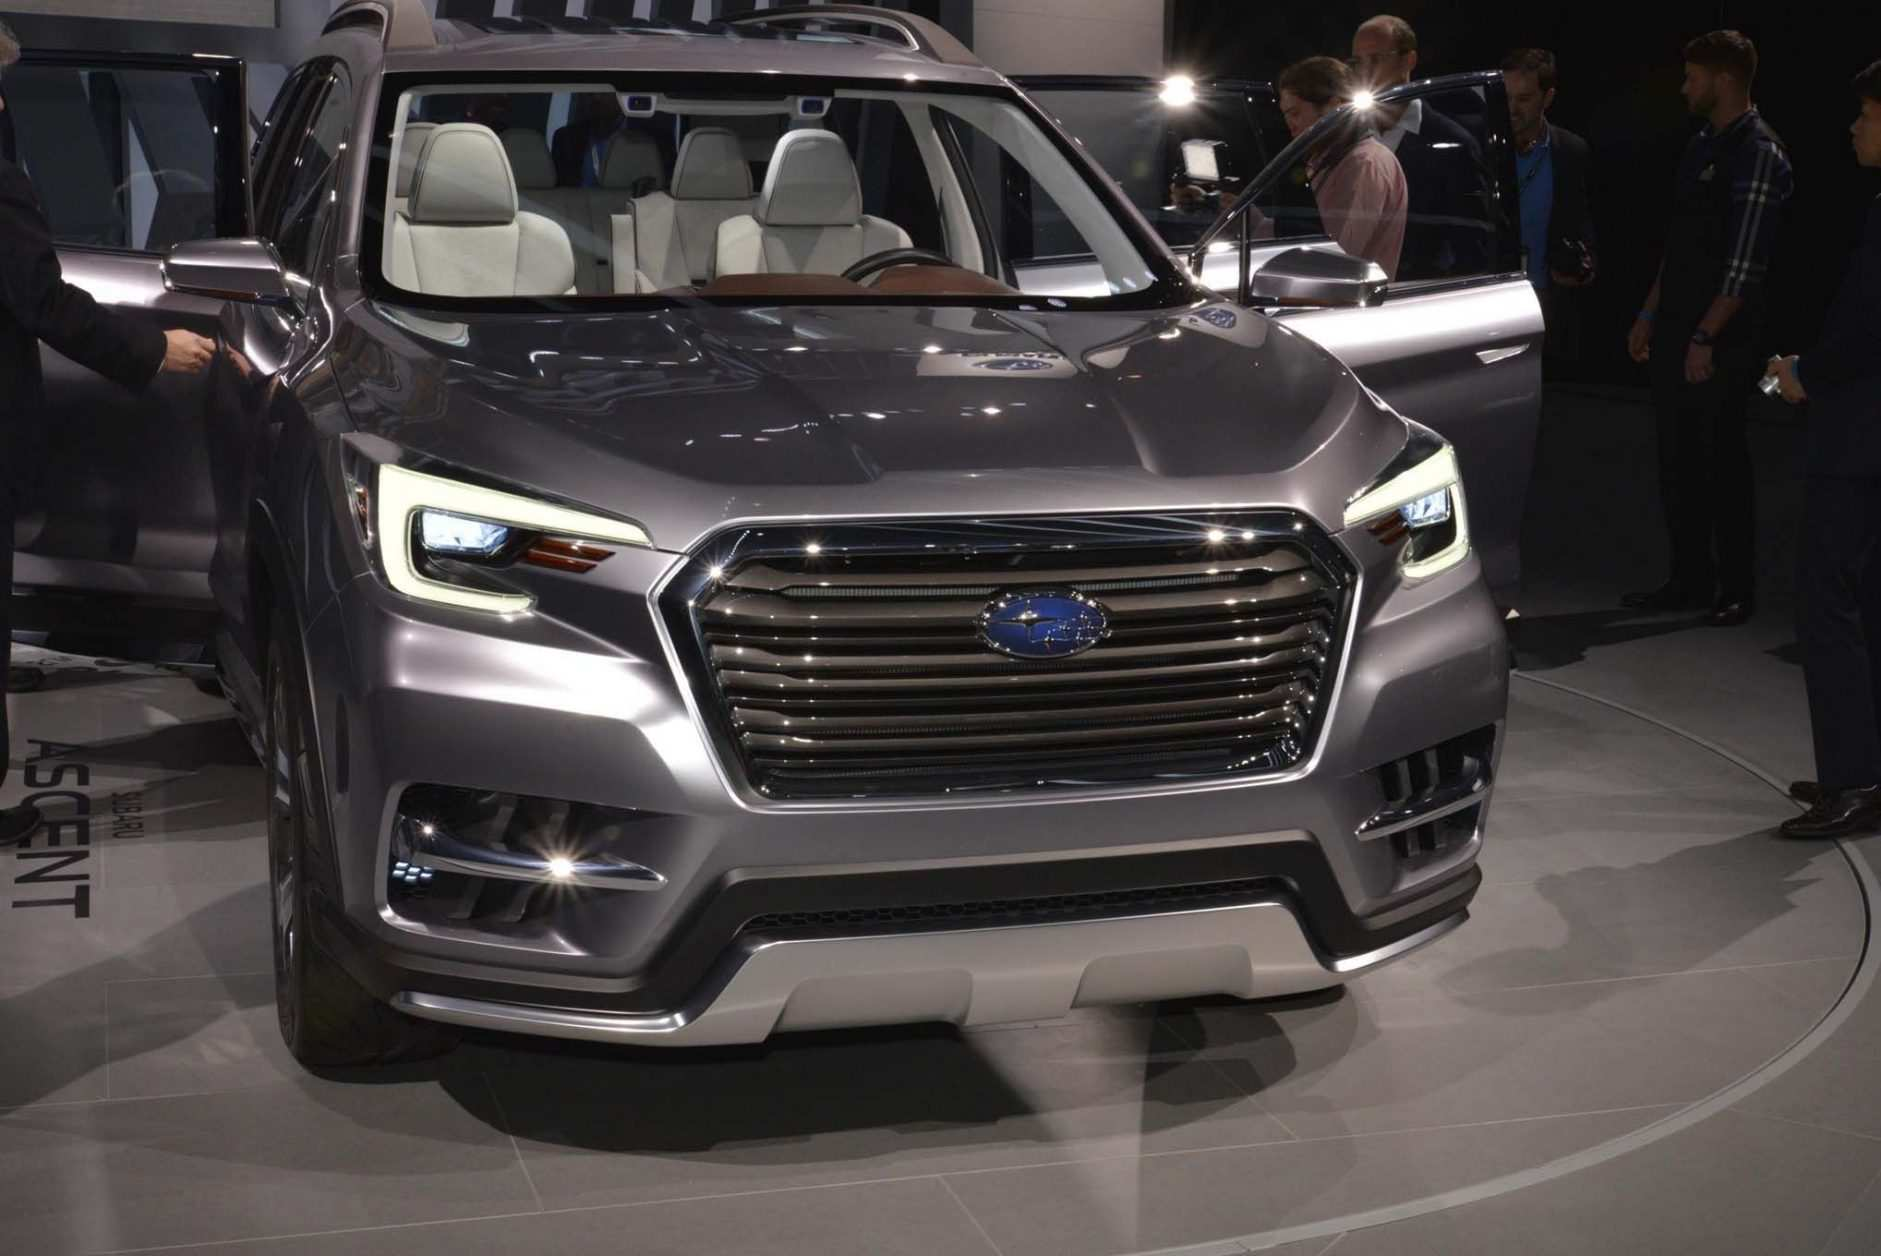 36 The Best Tribeca Subaru 2019 Performance And New Engine